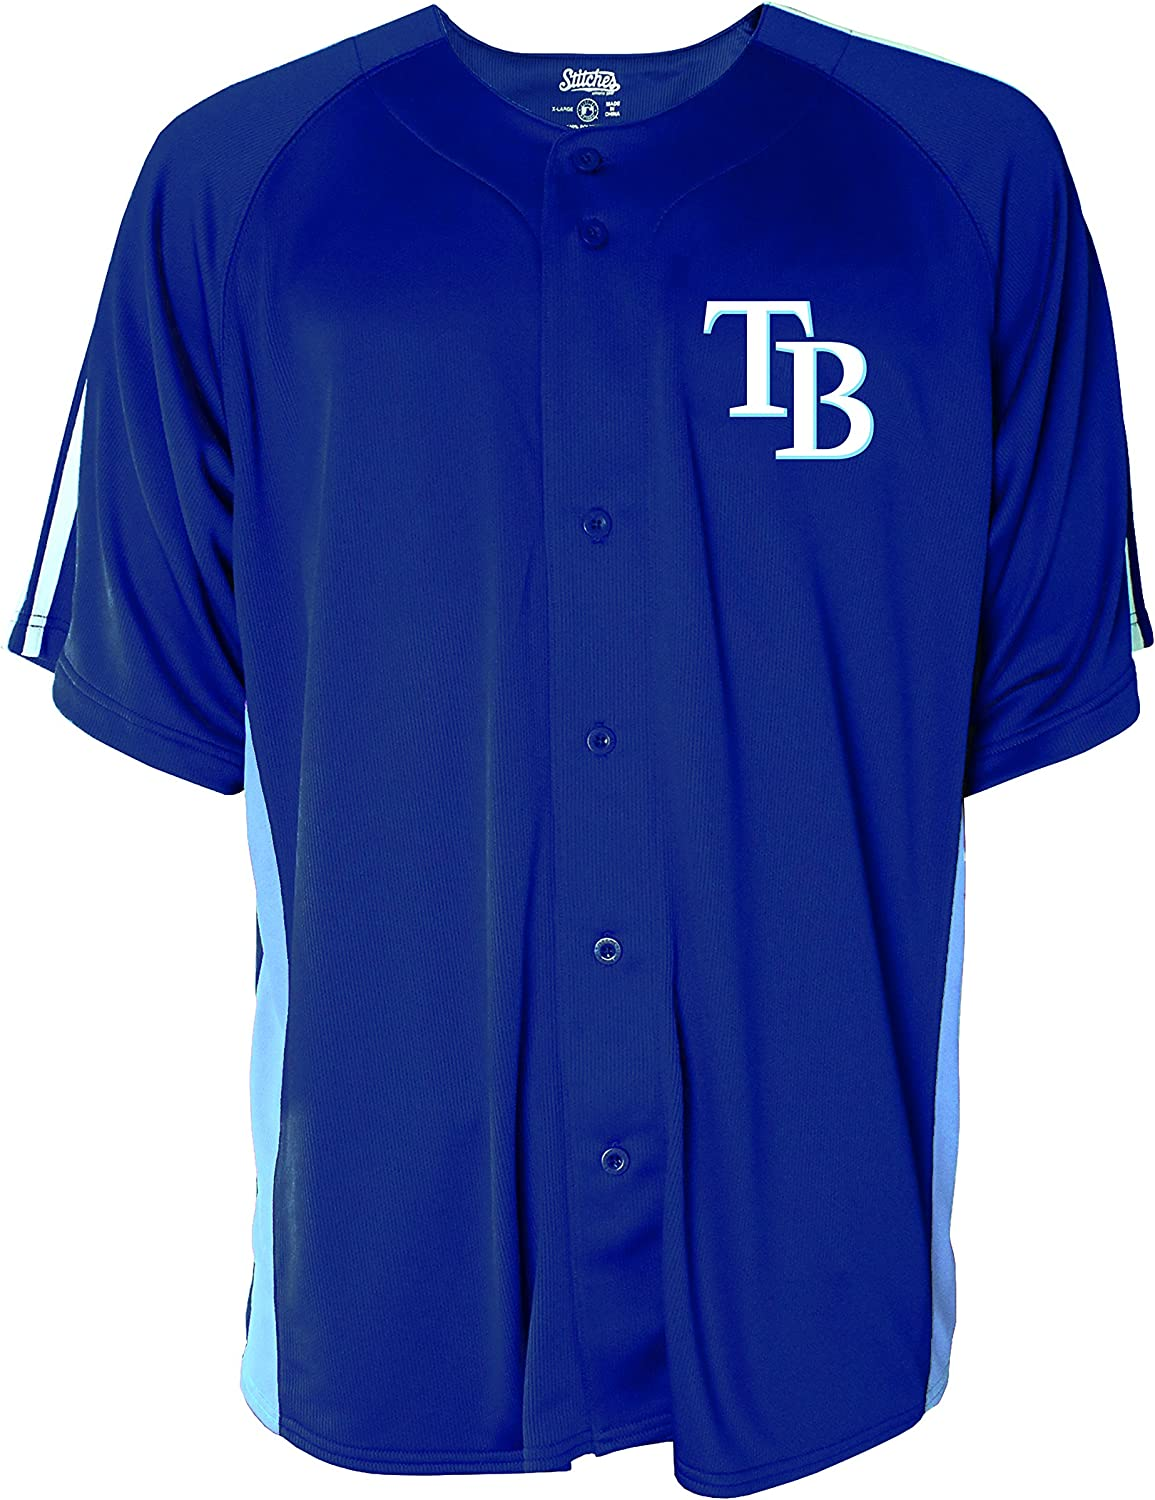 Stitches MLB Men's Button Fashion Jersey Down Overseas Branded goods parallel import regular item